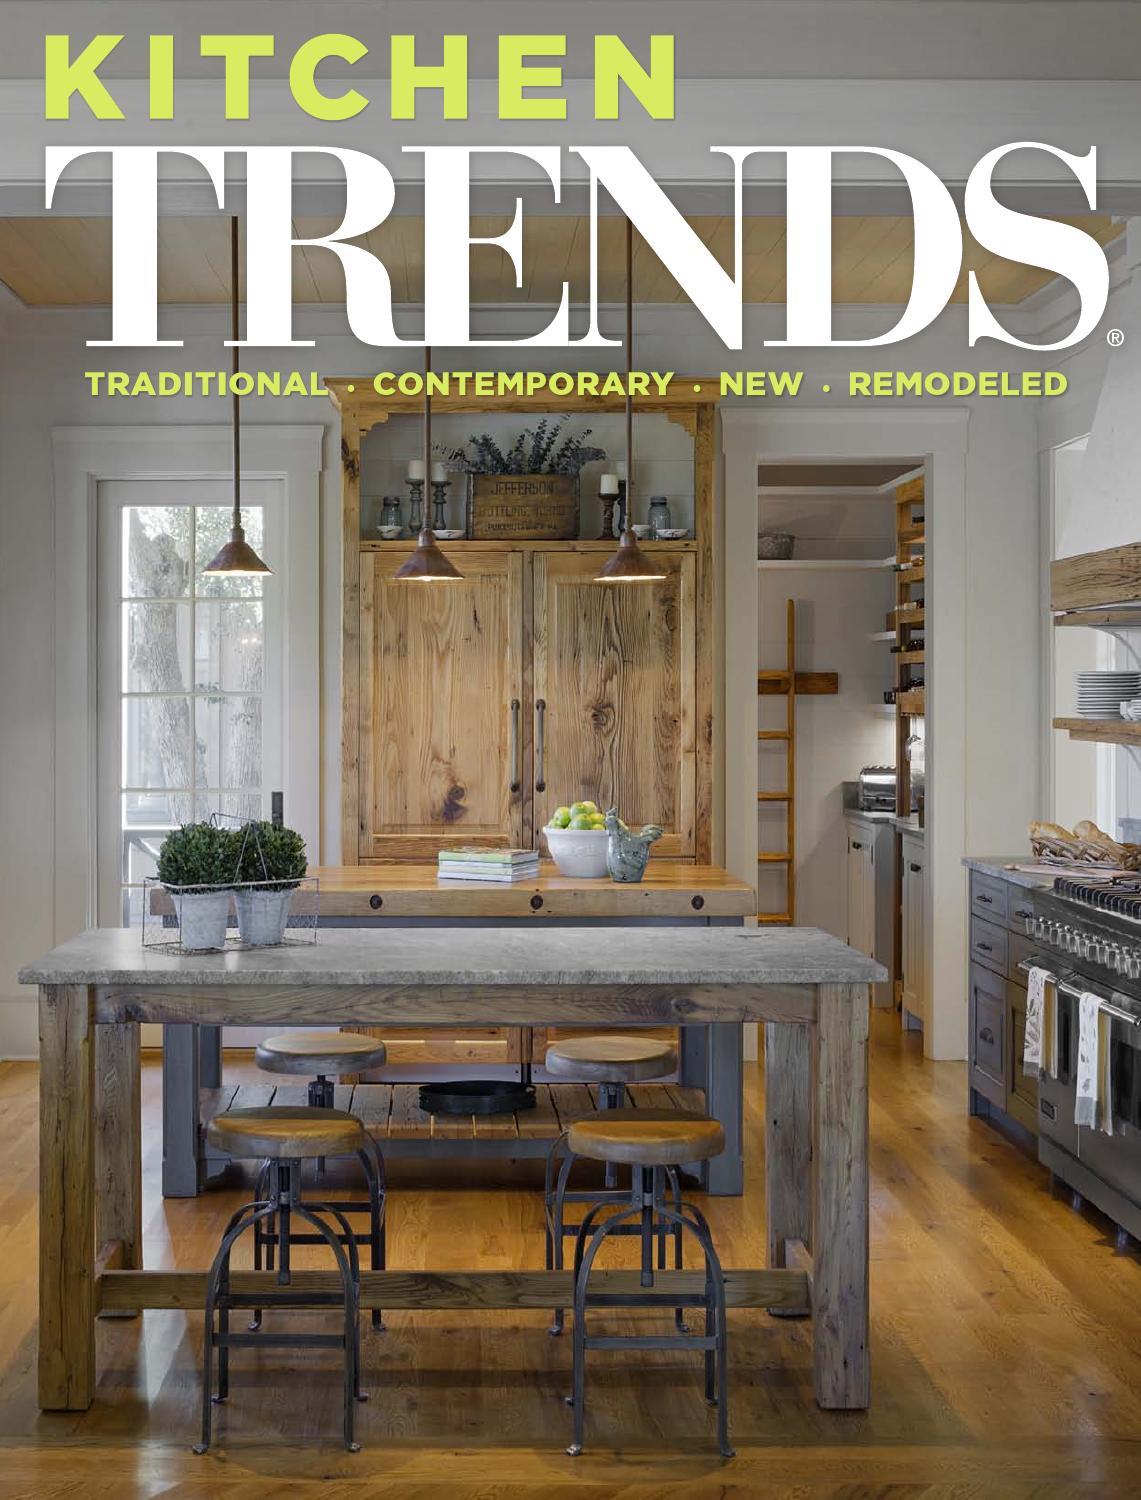 Kitchen Trends Usa Vol 30/03 By Trendsideas - Issuu